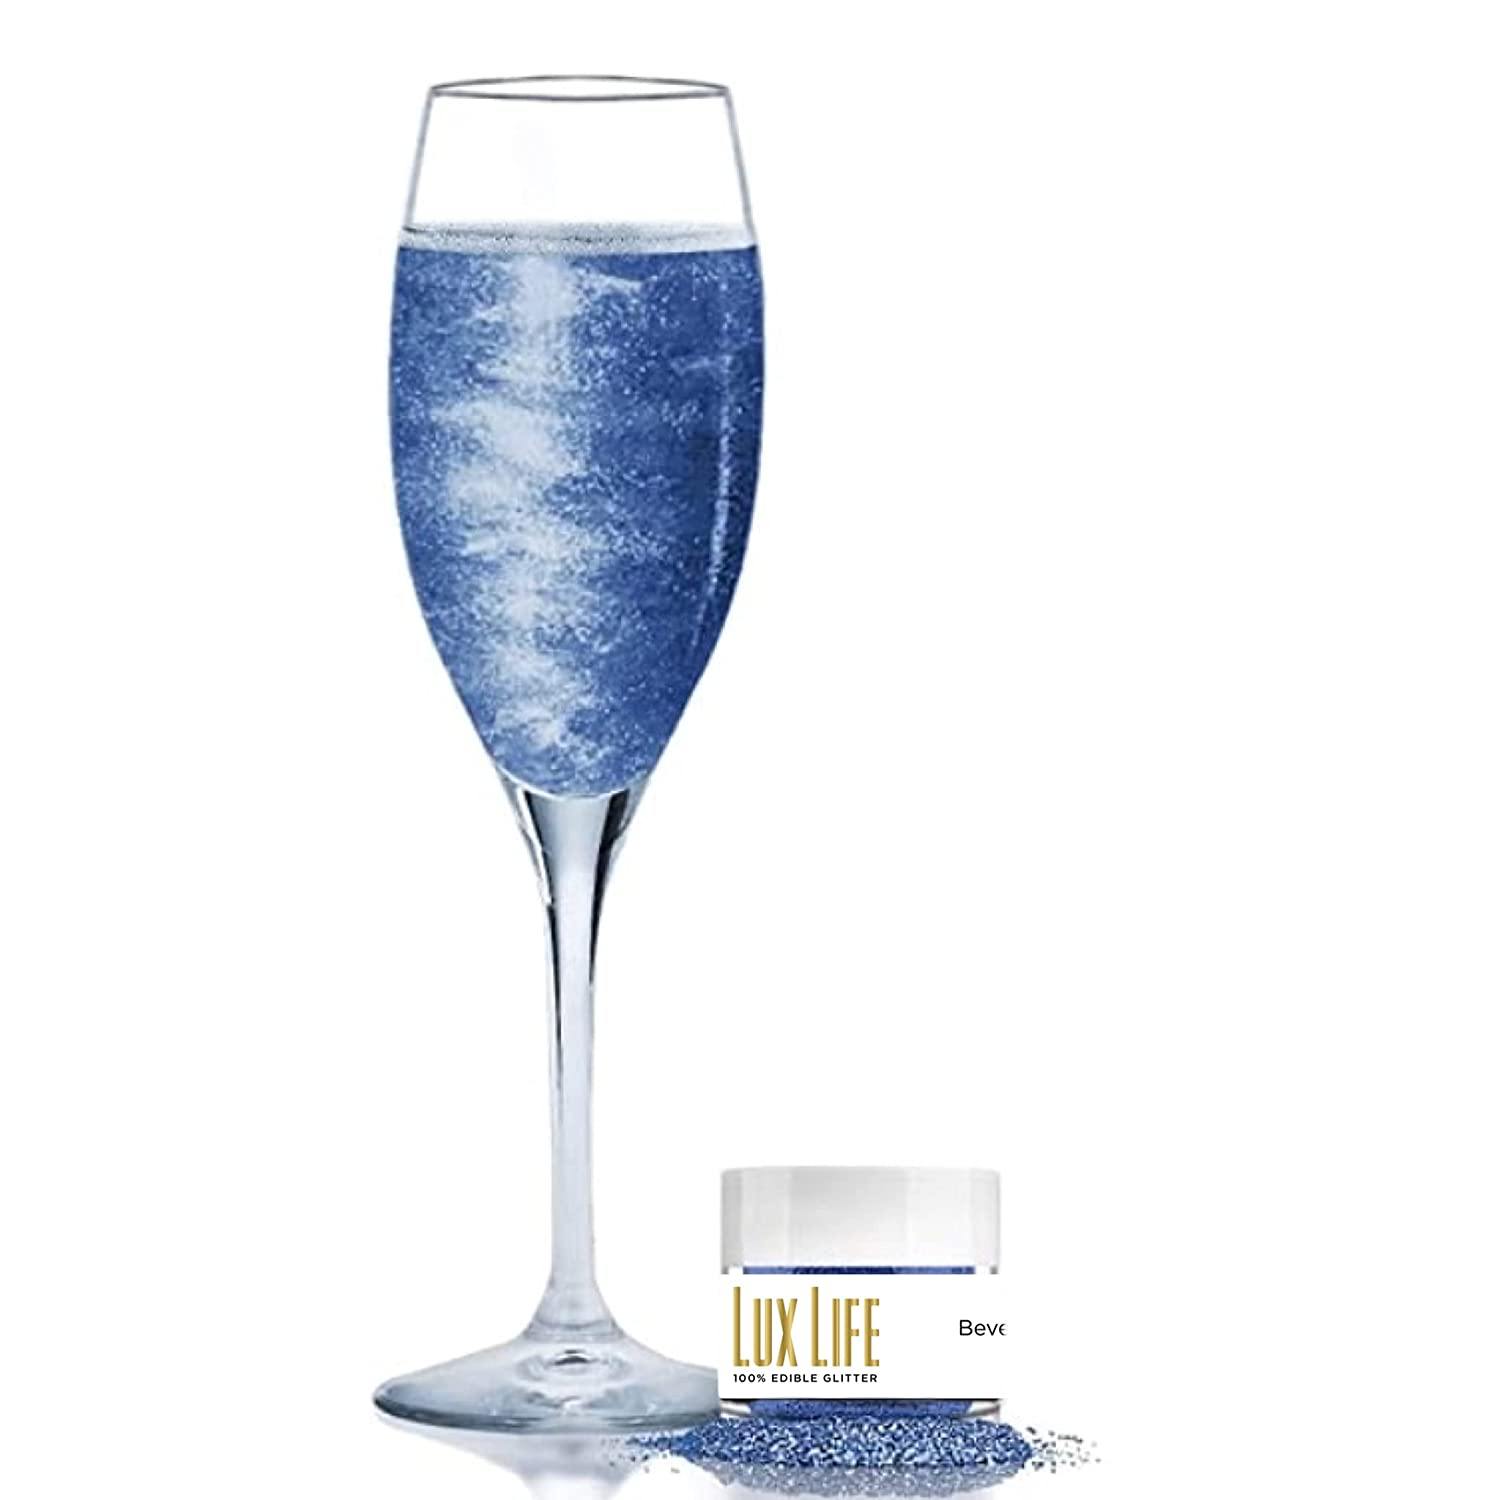 Lux Life USA Manufactured Shinny Glitter, Beverage Dust for Cocktails, Shimmer Glitter for Brew for Wine, Cocktails, Champagne100% Edible & Food Grade, (Blue, 4 Grams)